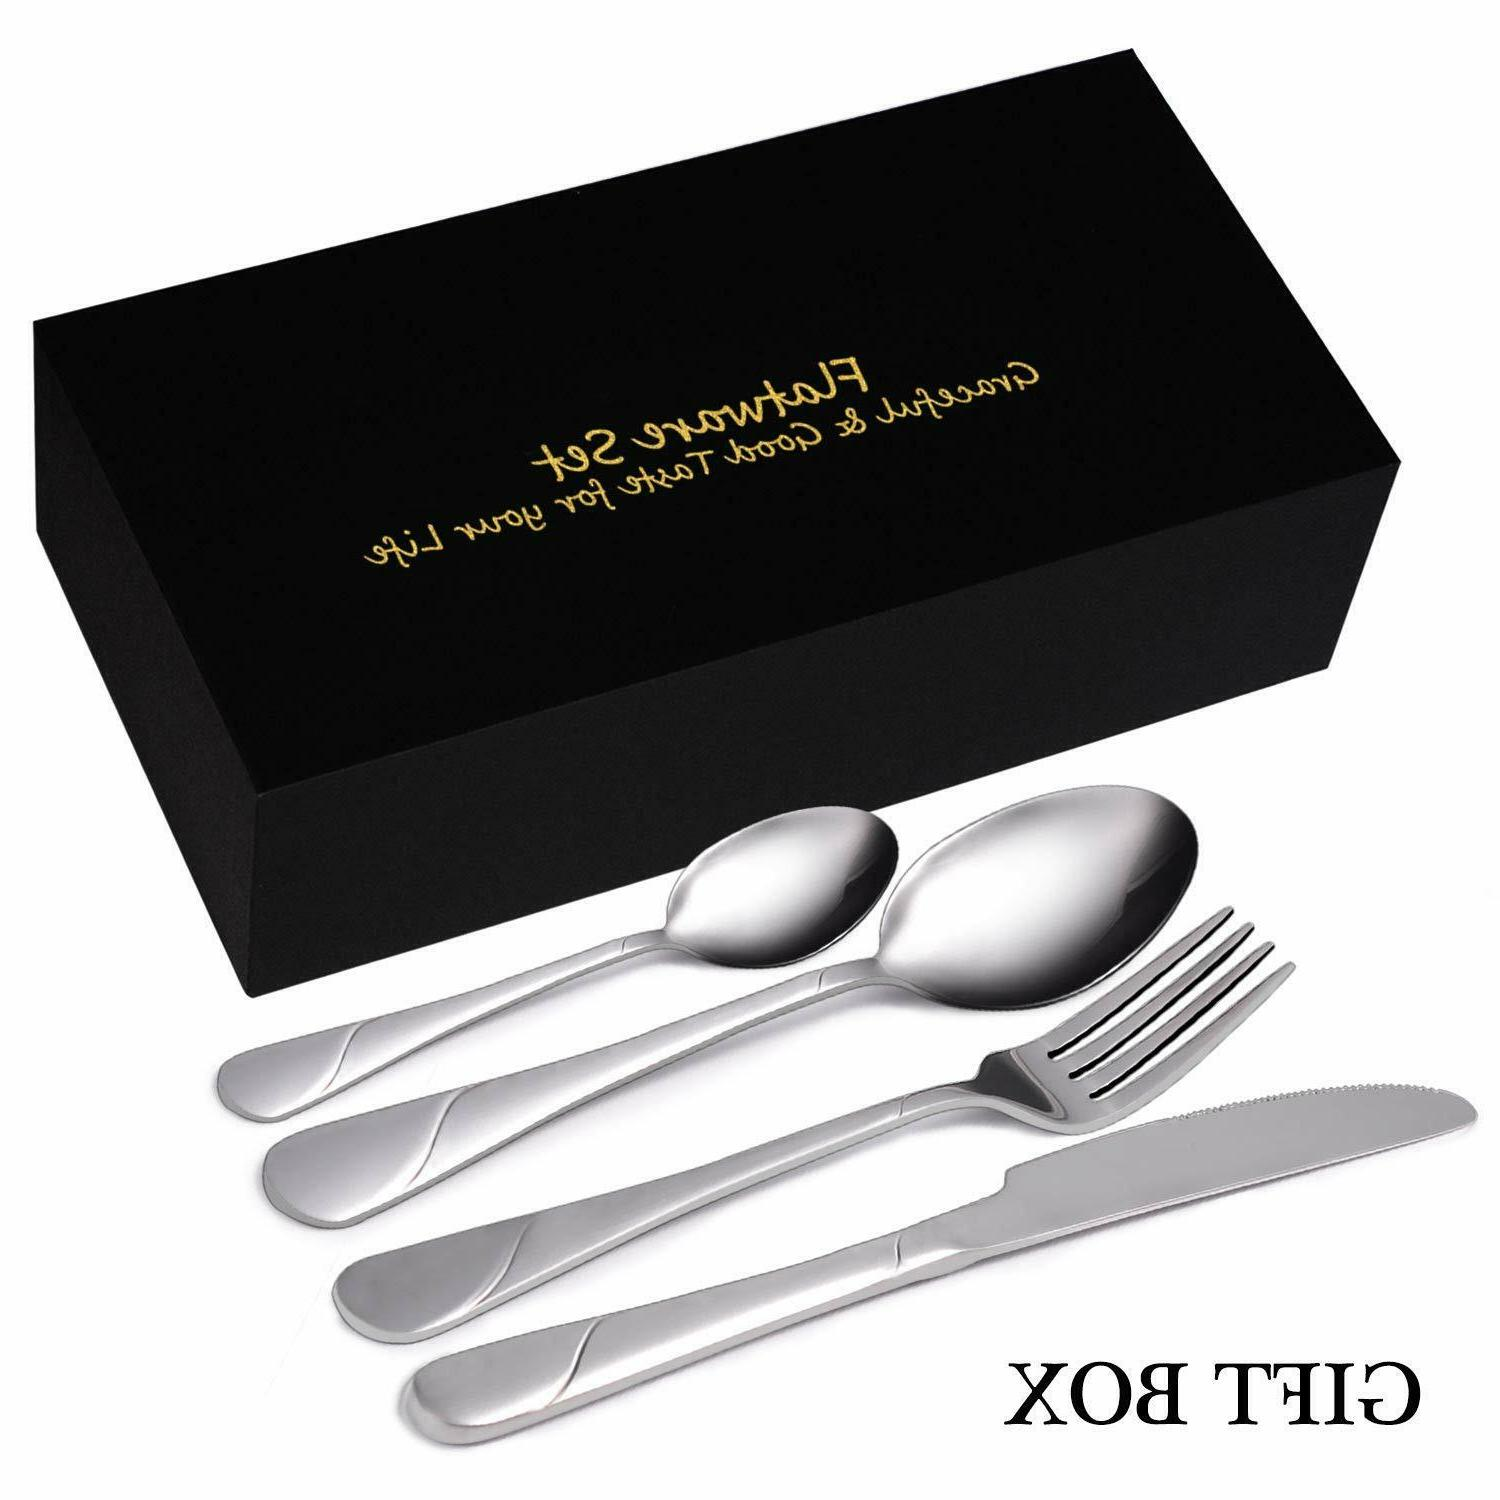 flatware set 24 piece silverware set service